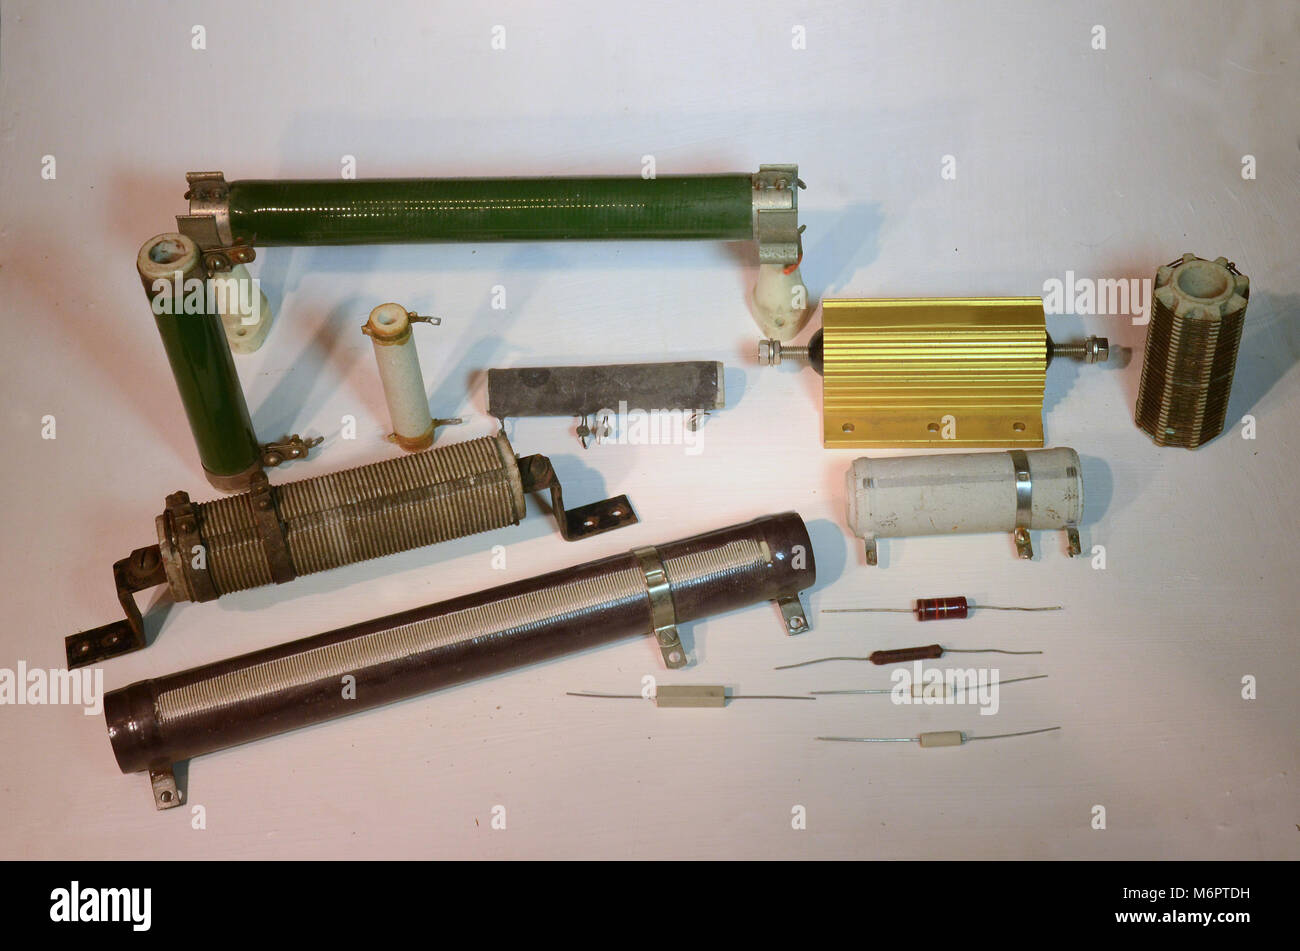 rheostat stock photos \u0026 rheostat stock images alamydifferent types of power resistors with wattages of 2 to 200 watt stock image